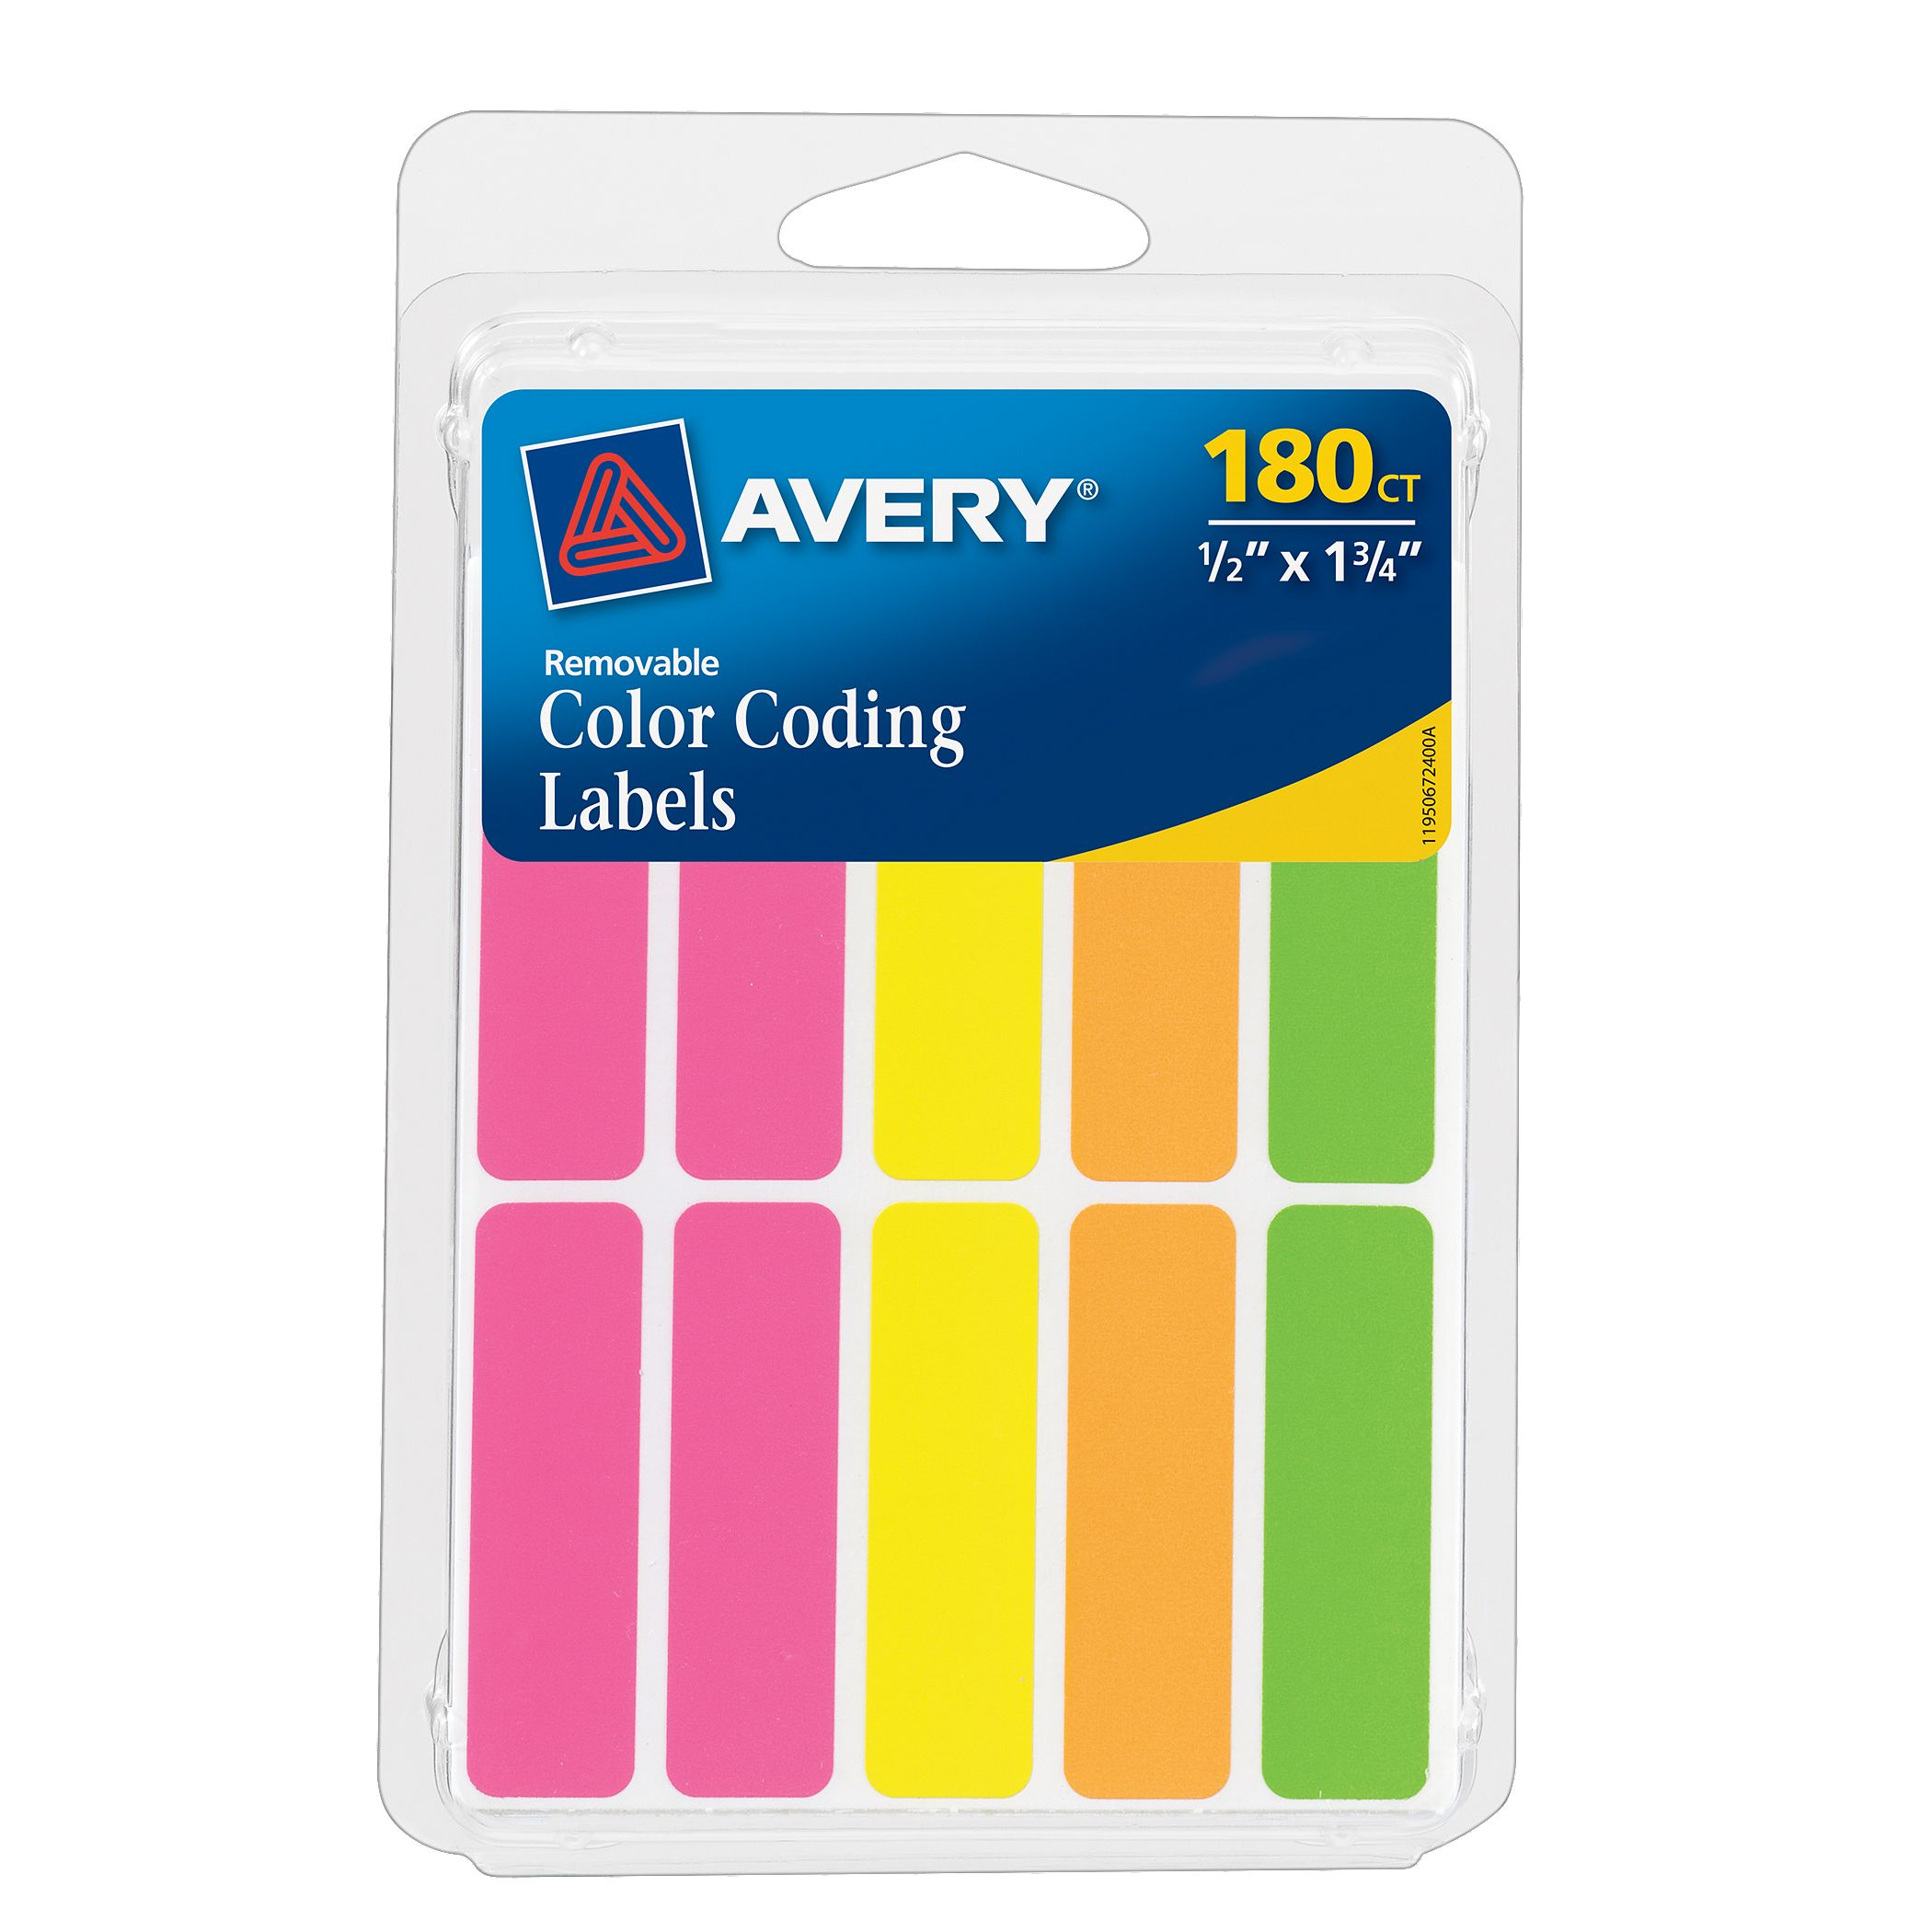 "Avery Neon .5""x1.75"", Asst Colors, 180ct"